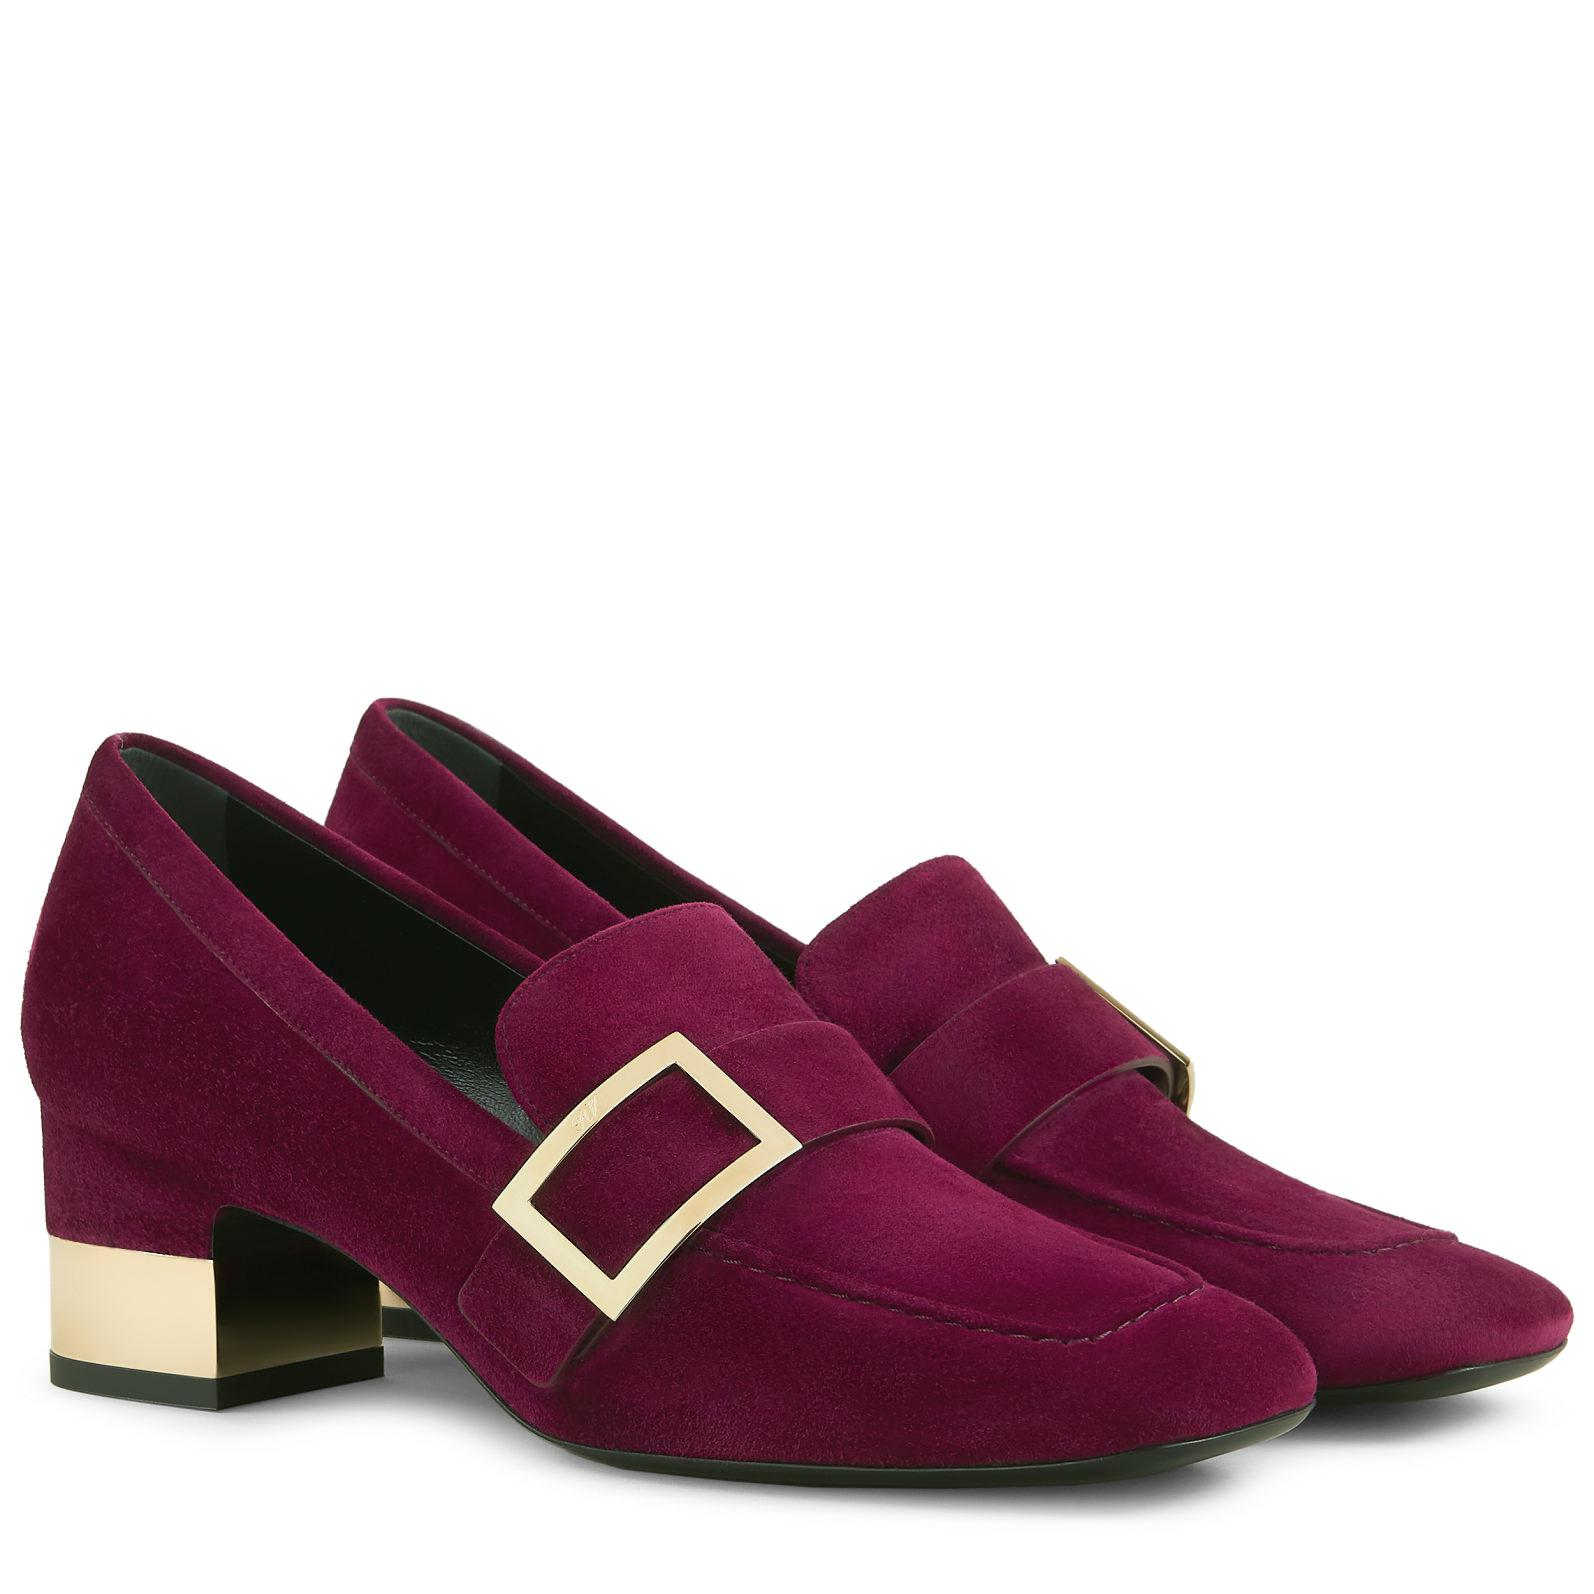 eb230a491f9 Roger Vivier - Purple Podium Metal Buckle Loafers - Lyst. View fullscreen